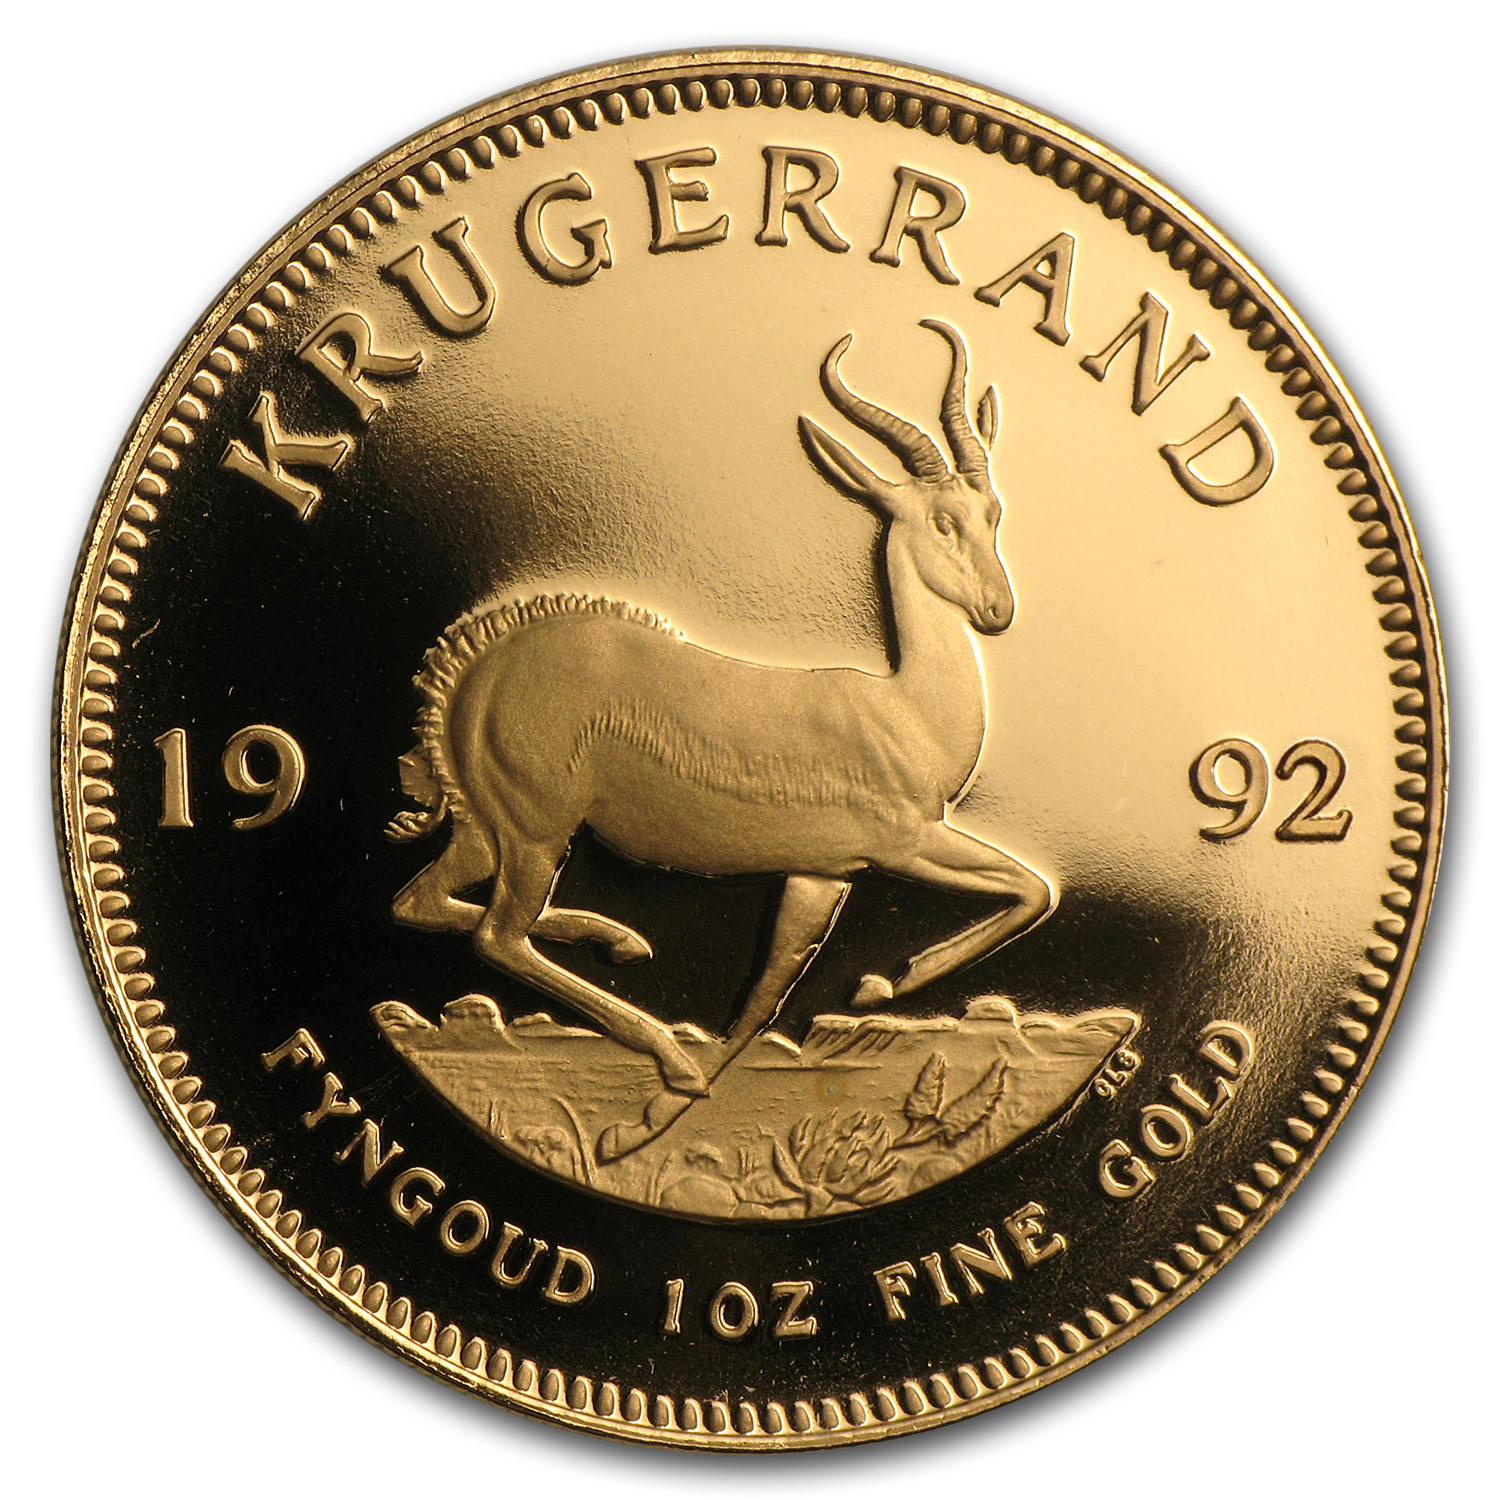 1992 South Africa 1 oz Gold Krugerrand